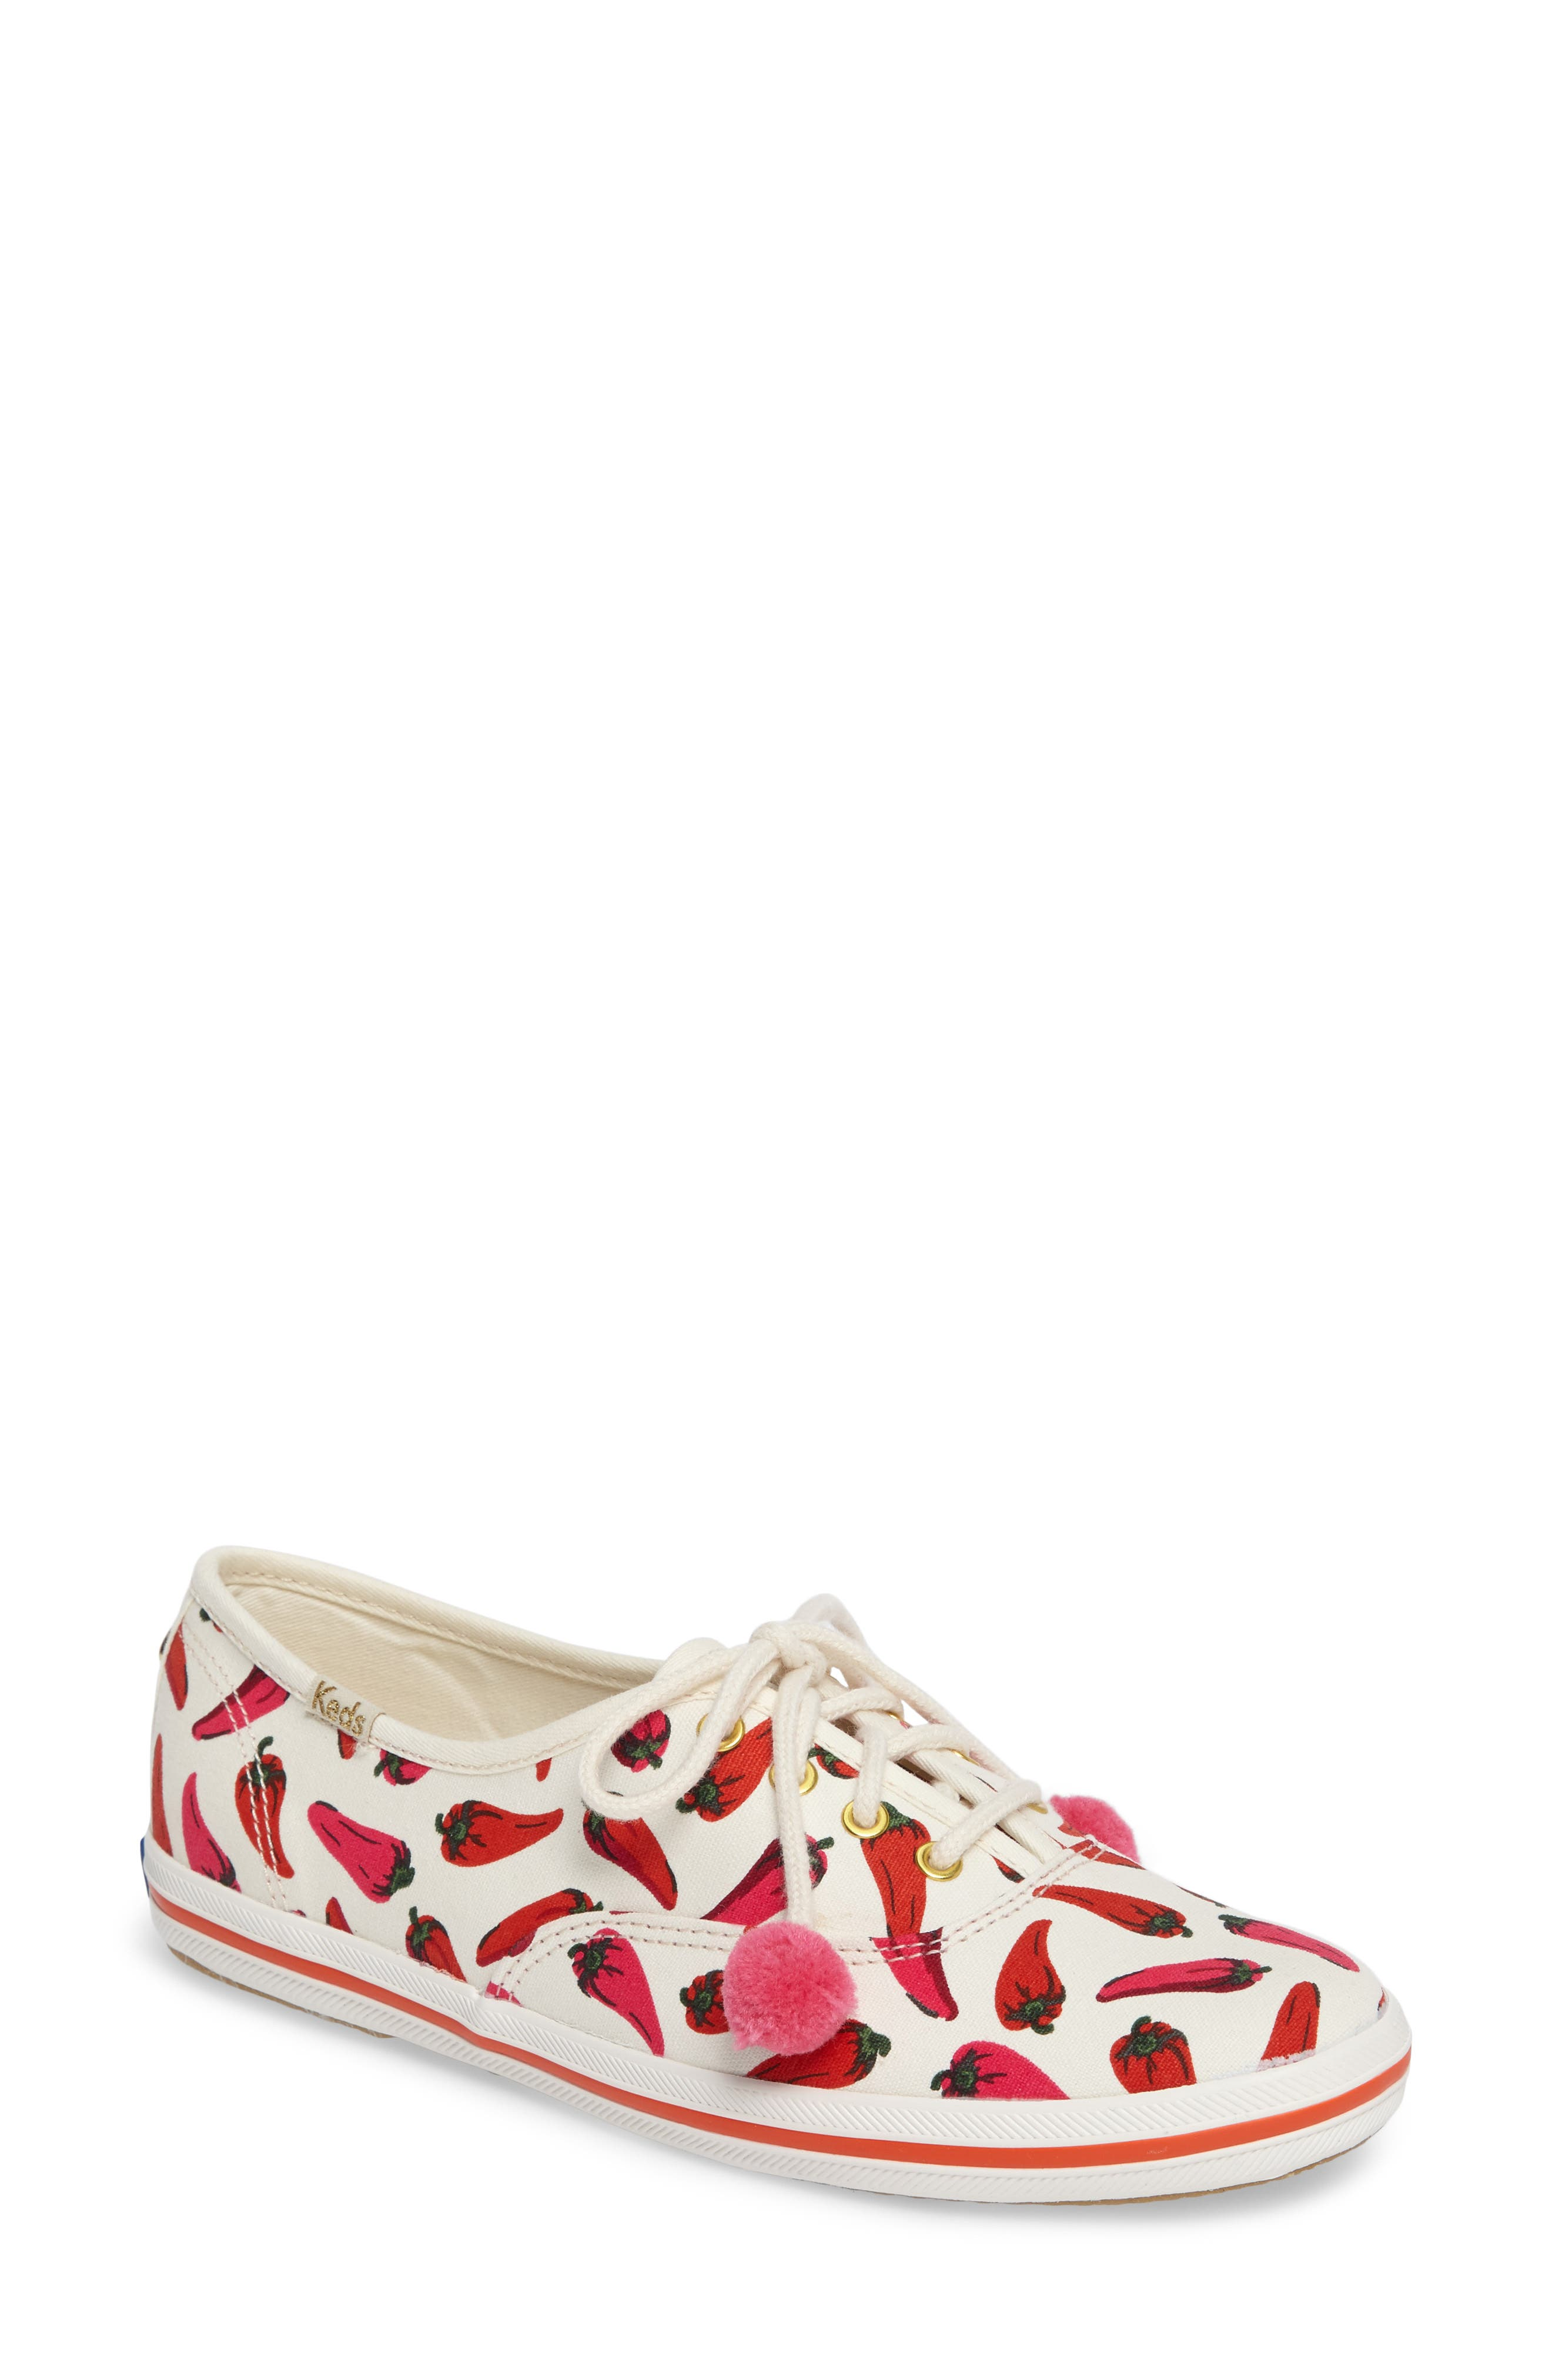 Keds<sup>®</sup> x kate spade new york champion sneaker,                             Main thumbnail 4, color,